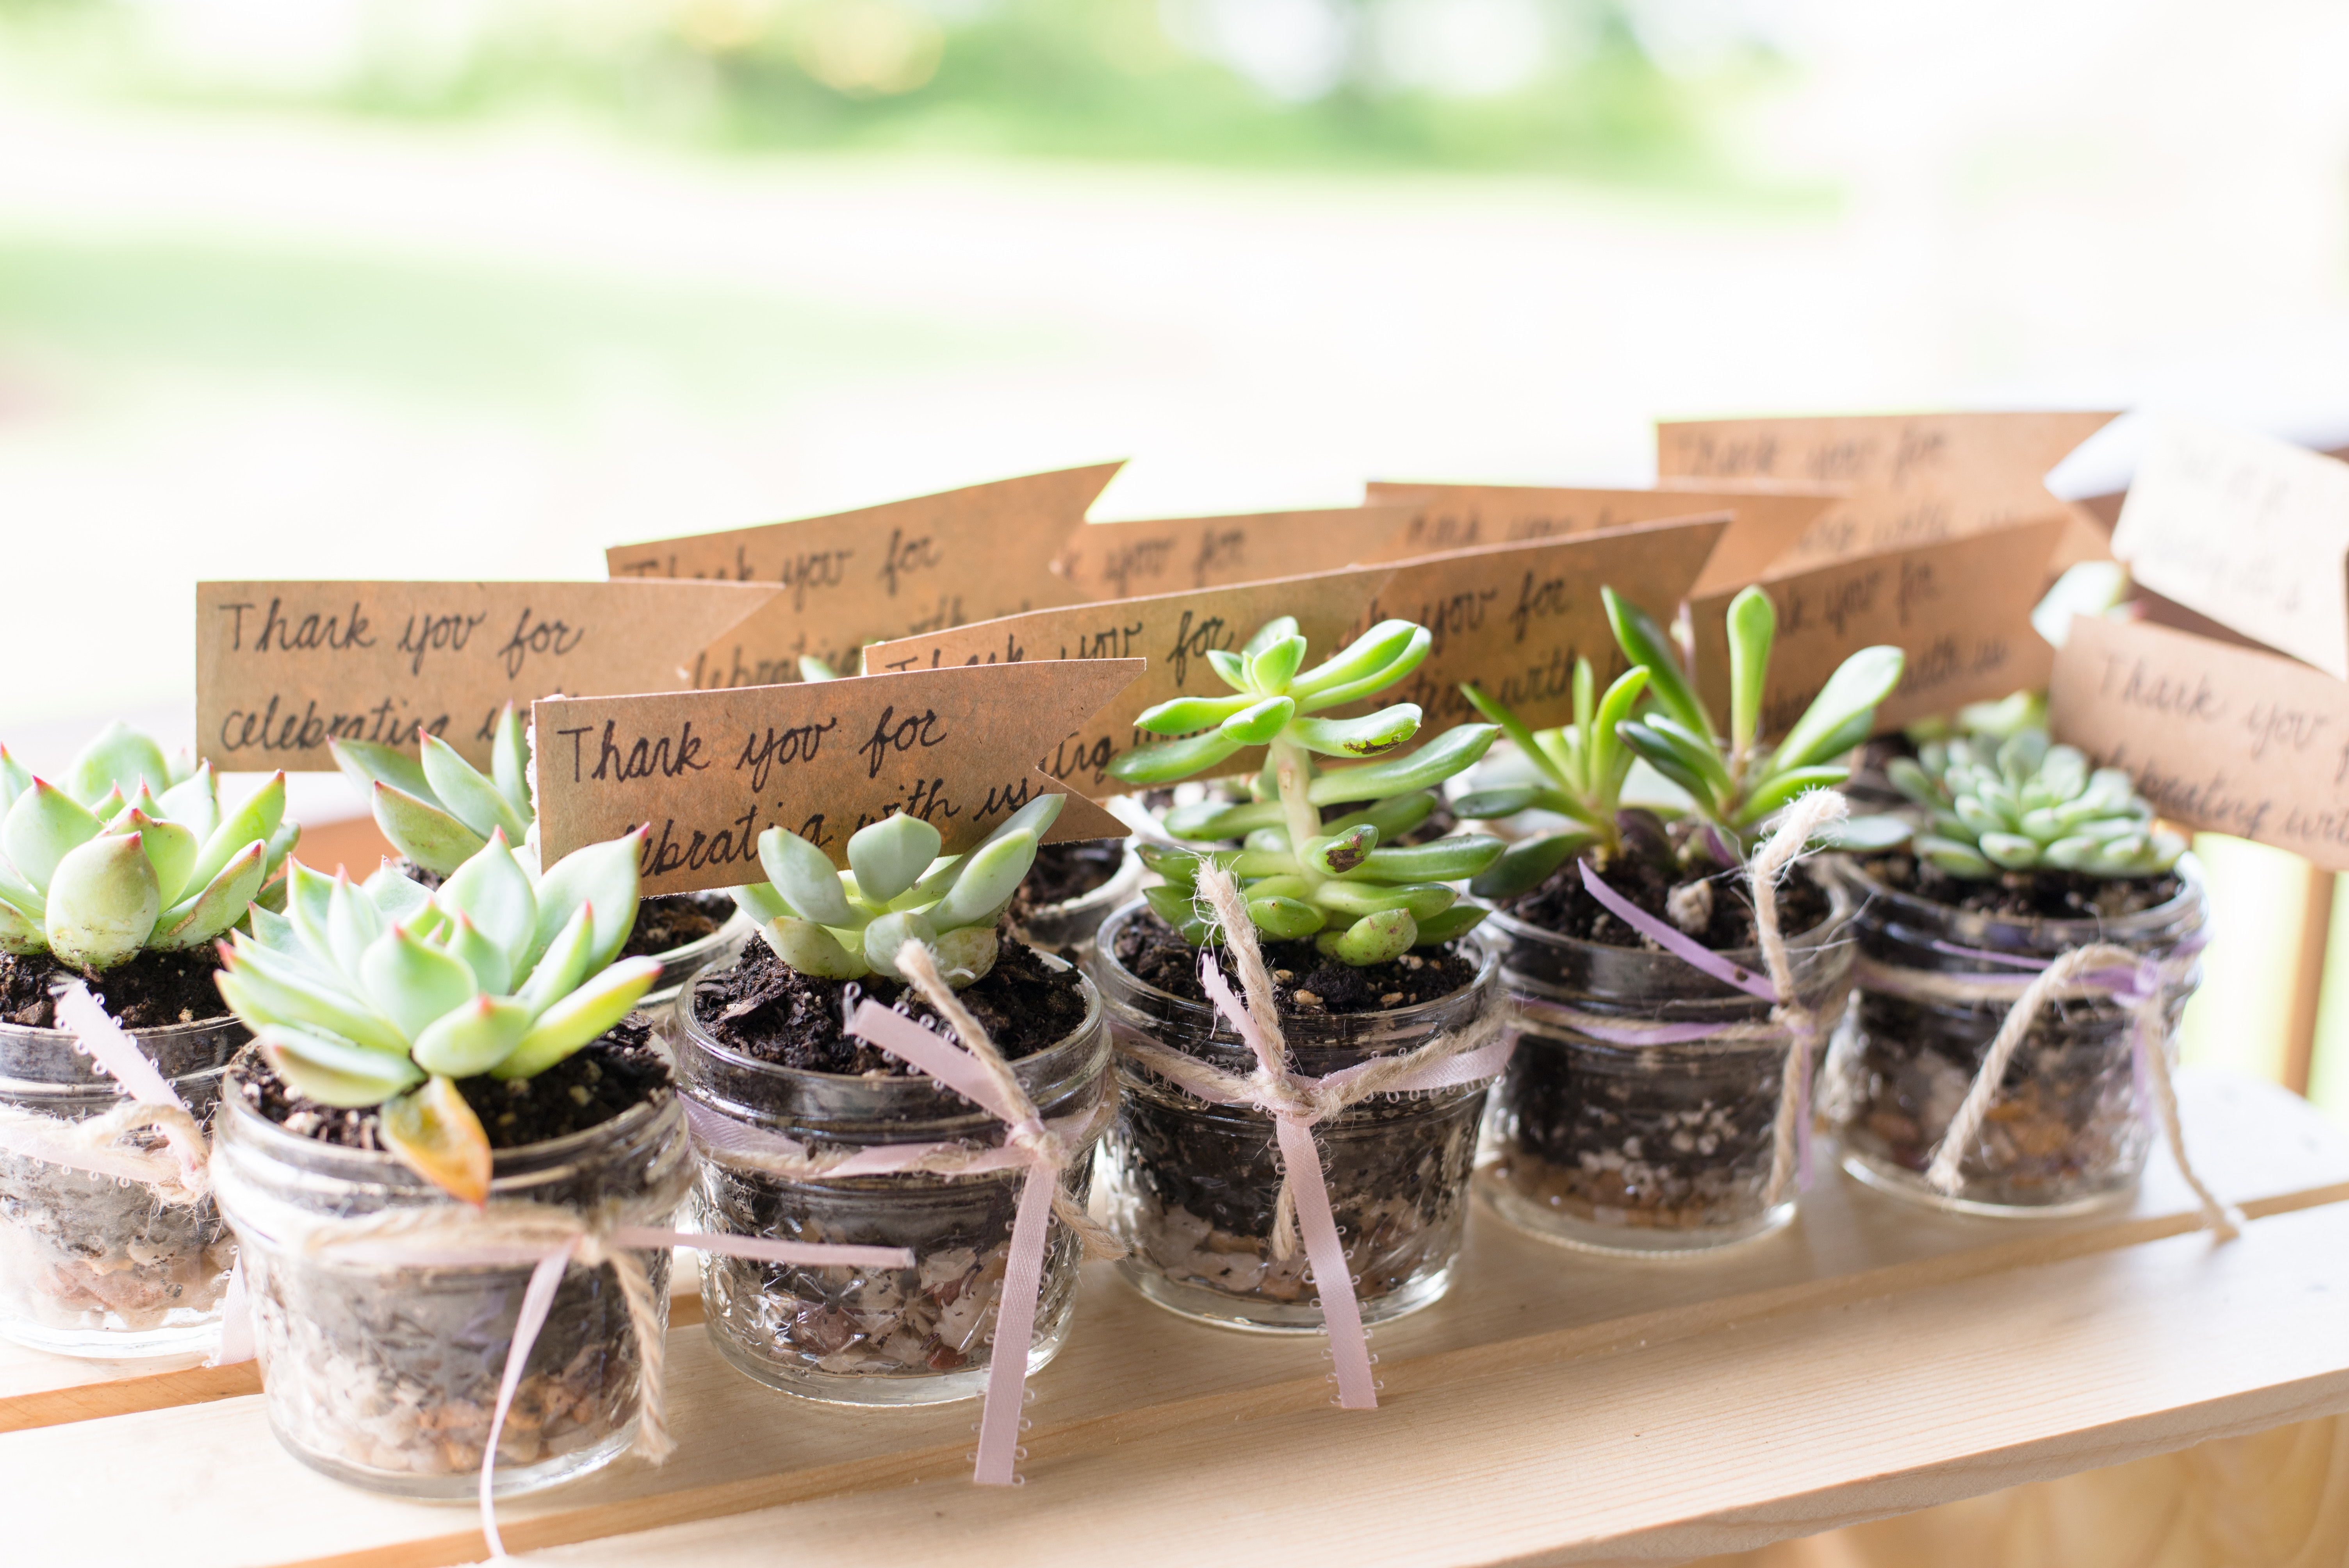 10 Ways to Use Corporate Gifting Othe...